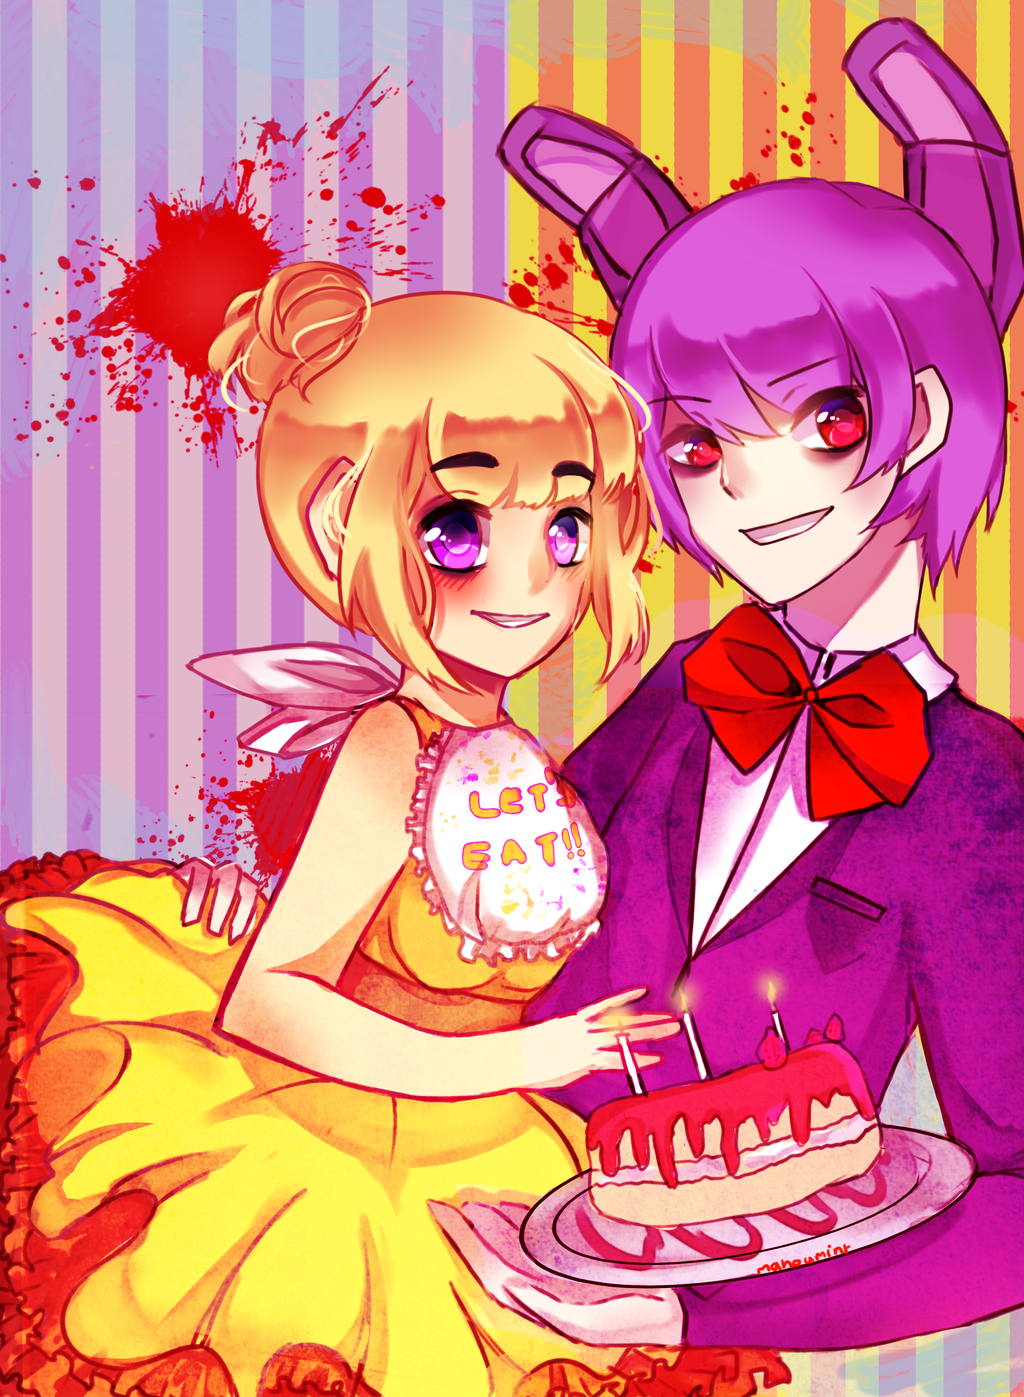 FNAF Chica and Bonnie. [speedpaint!] by Milkoes